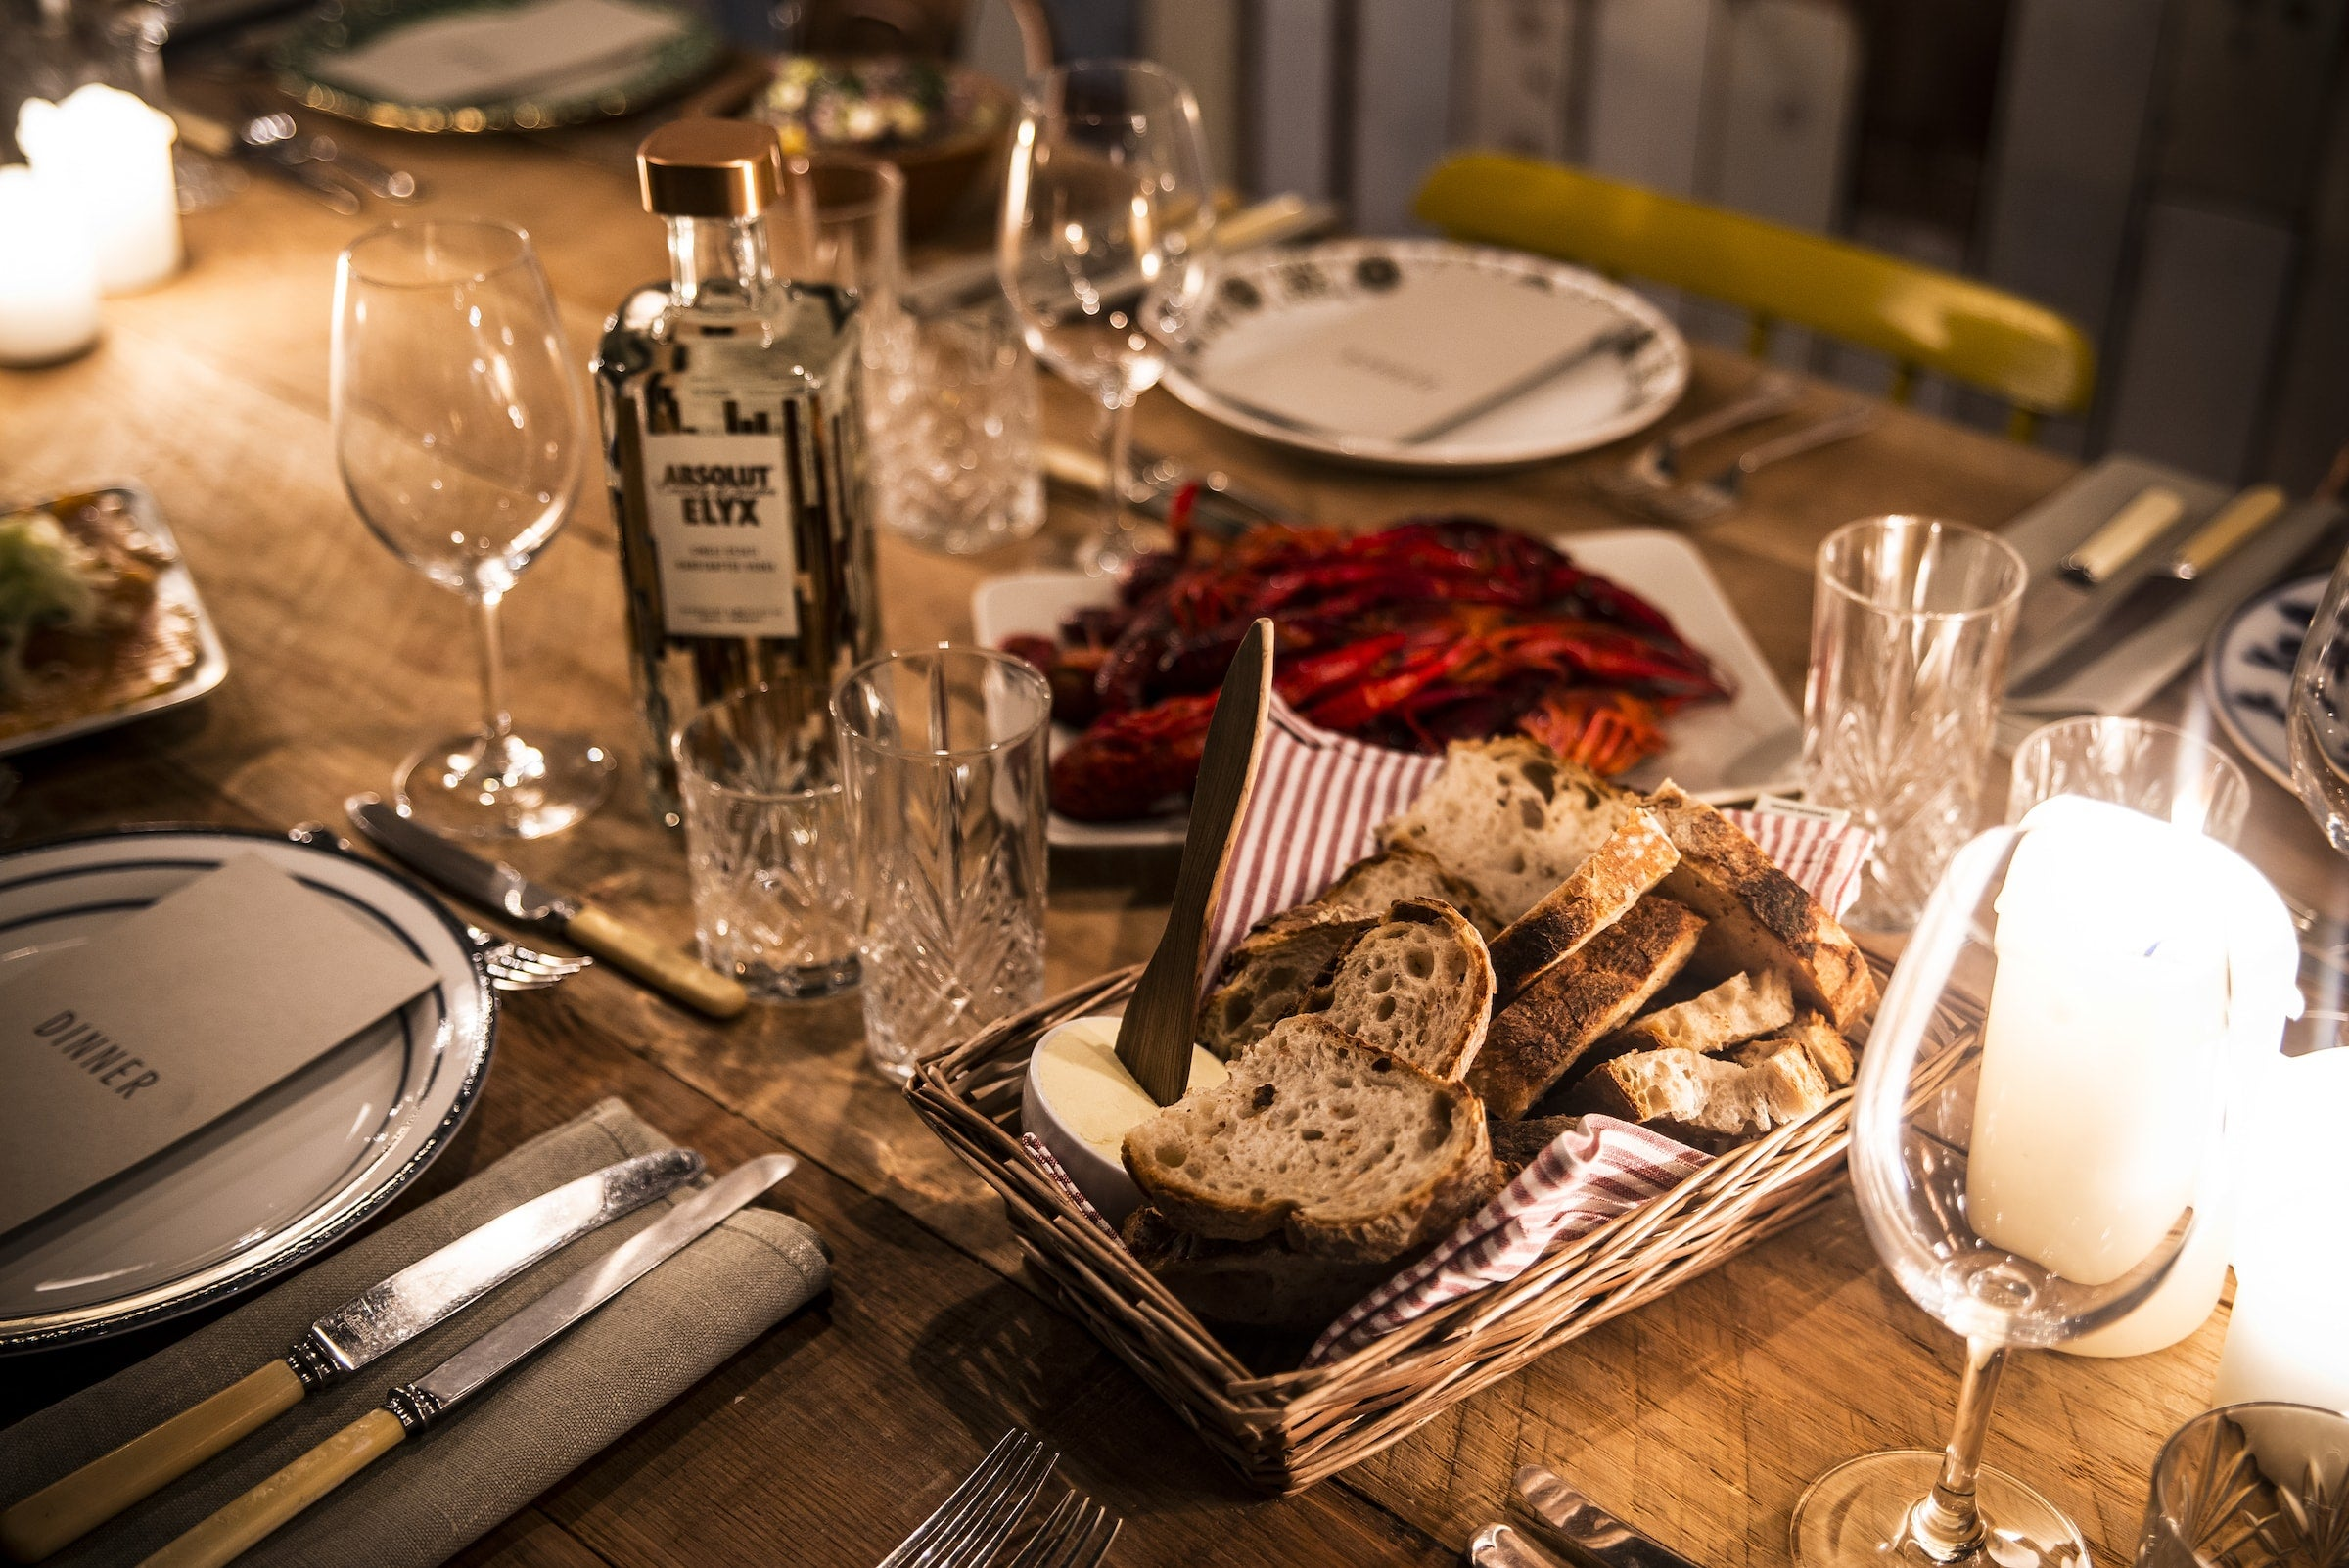 Seafood and Elyx at the Hunting Lodge dinner